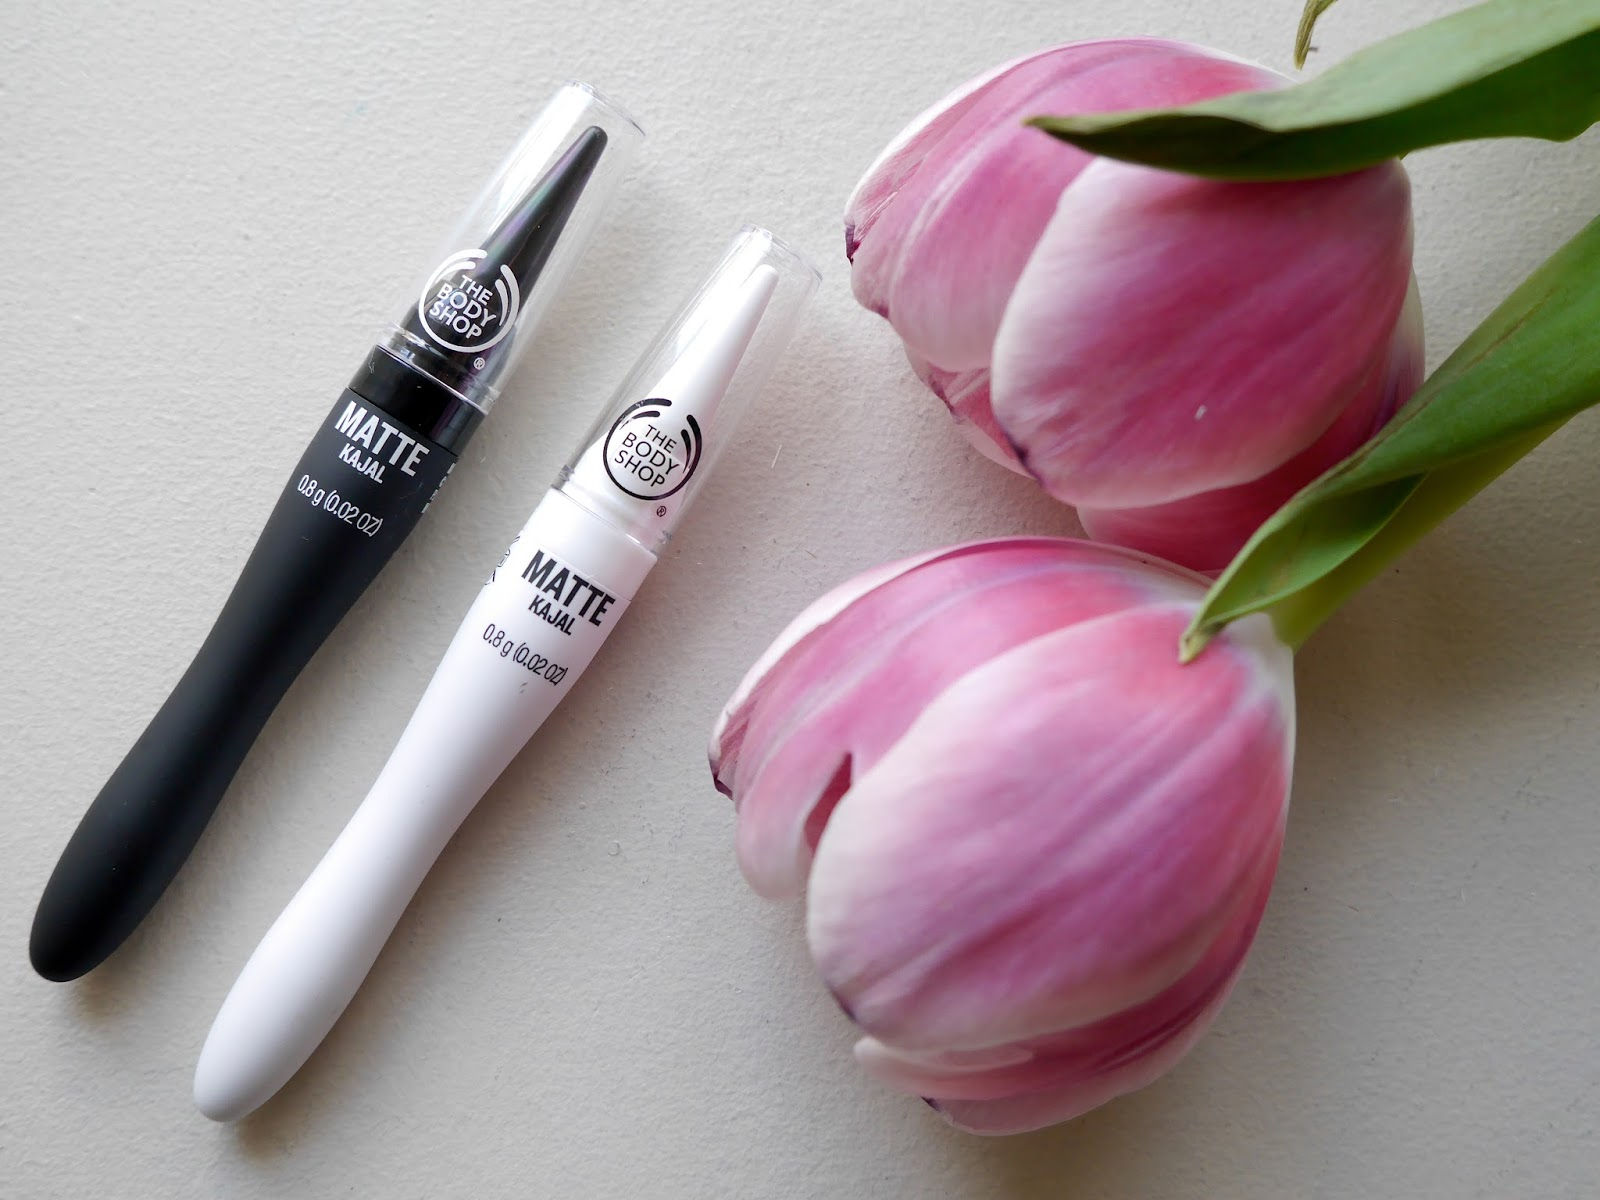 The Body Shop Matte Kajal Liners black and white swatch review